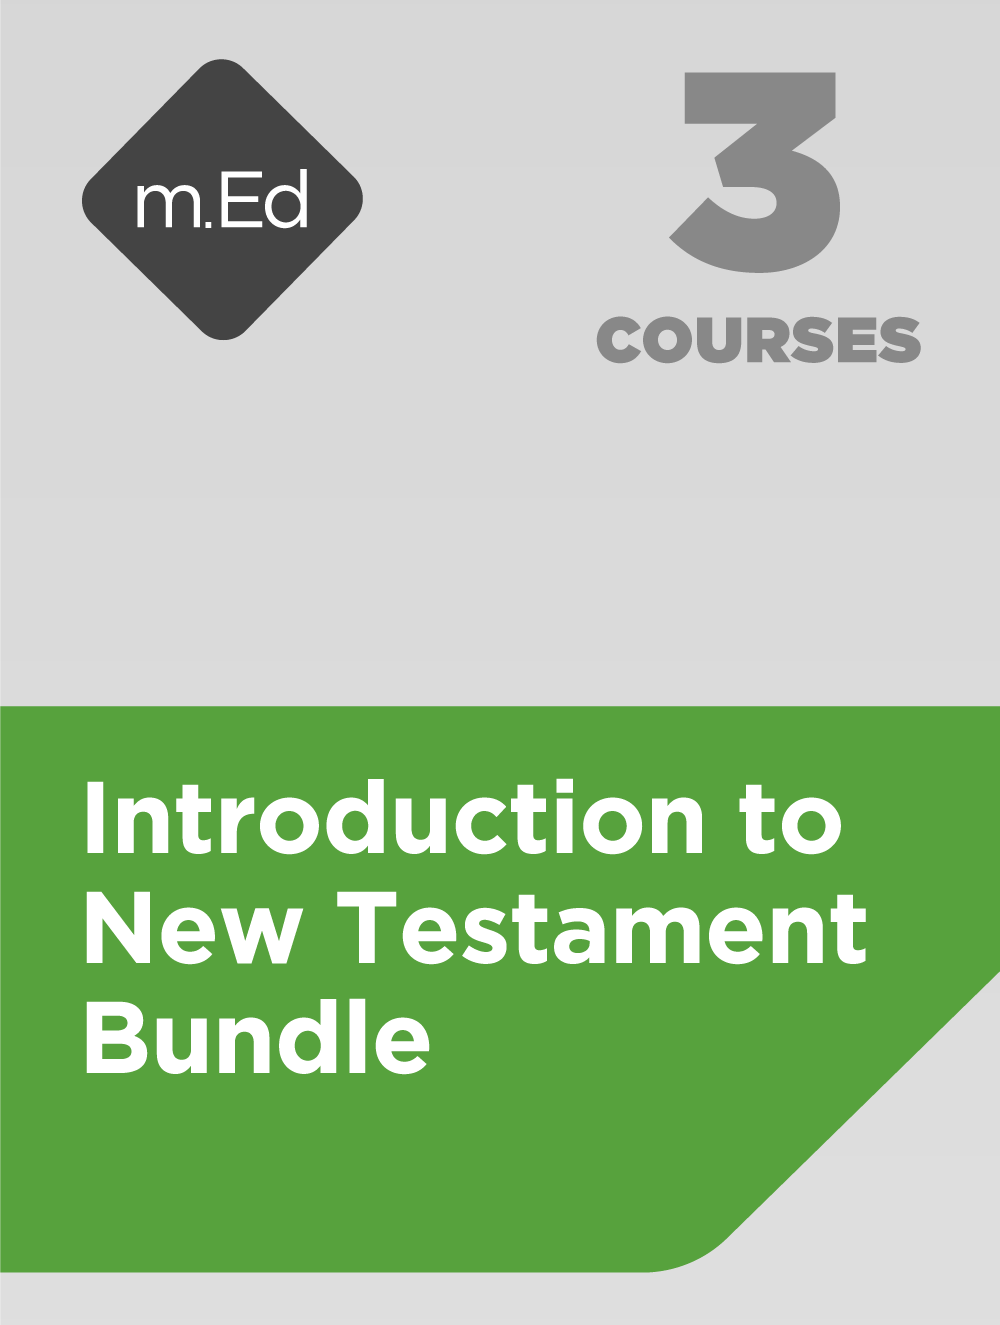 Introduction to New Testament Bundle (3 courses)